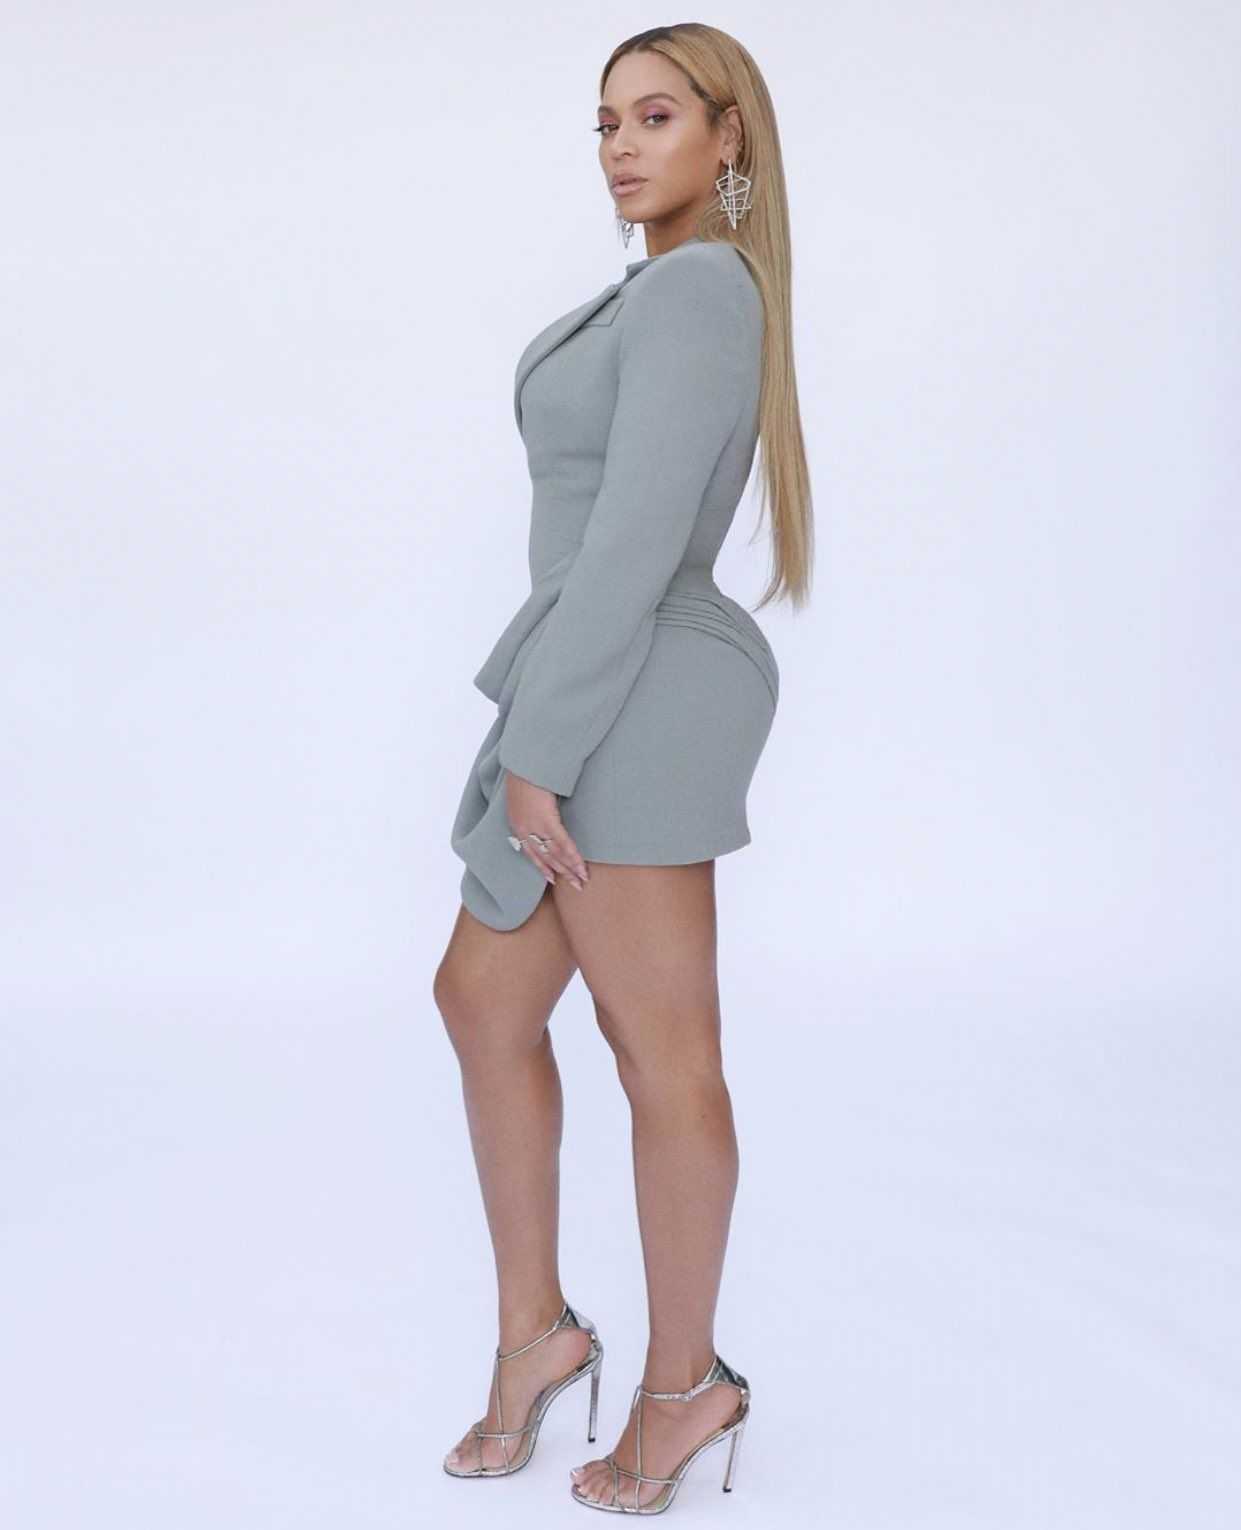 Familia Carter On In 2020 Beyonce Style Gray Mini Dresses Beyonce Queen